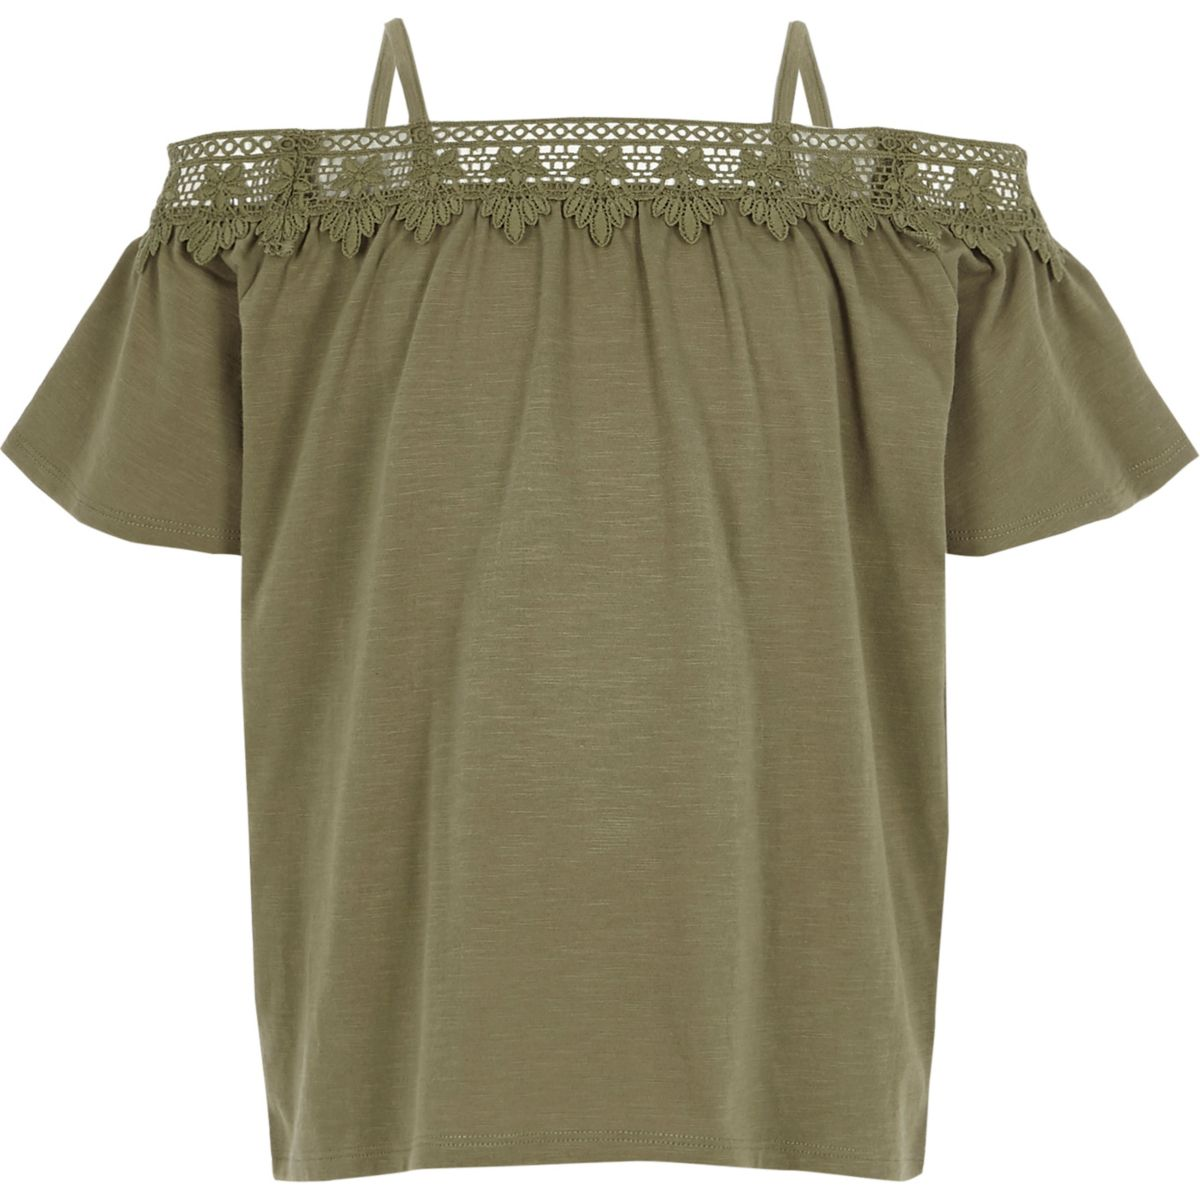 Girls khaki crochet lace bardot top